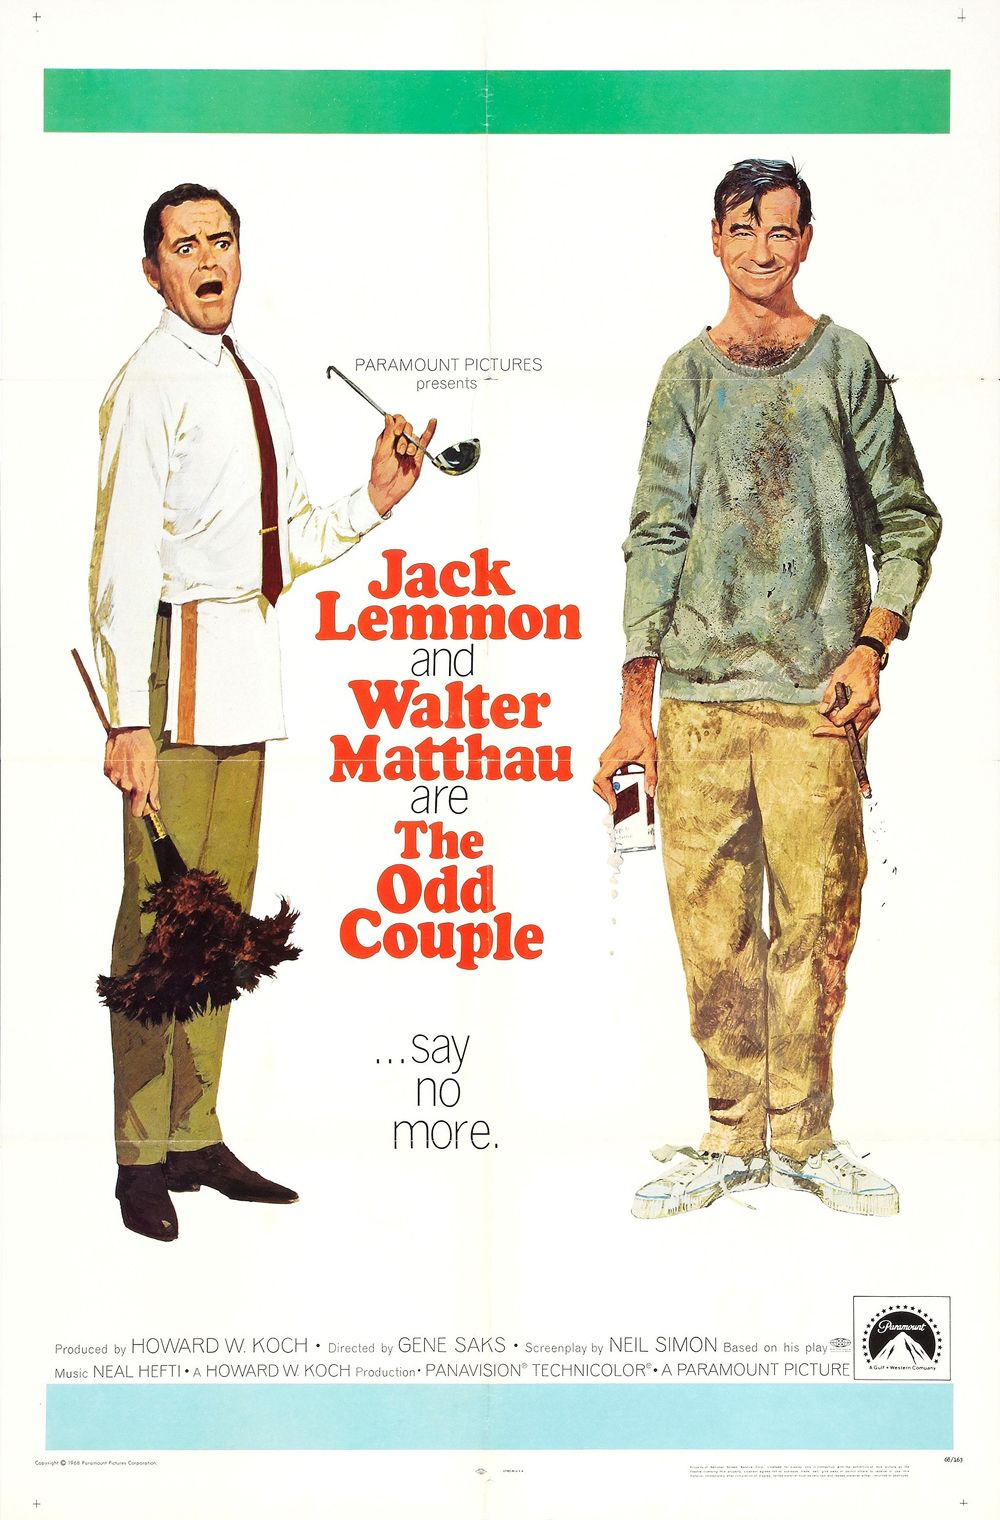 Robert McGinnis The Odd Couple (With images) Walter